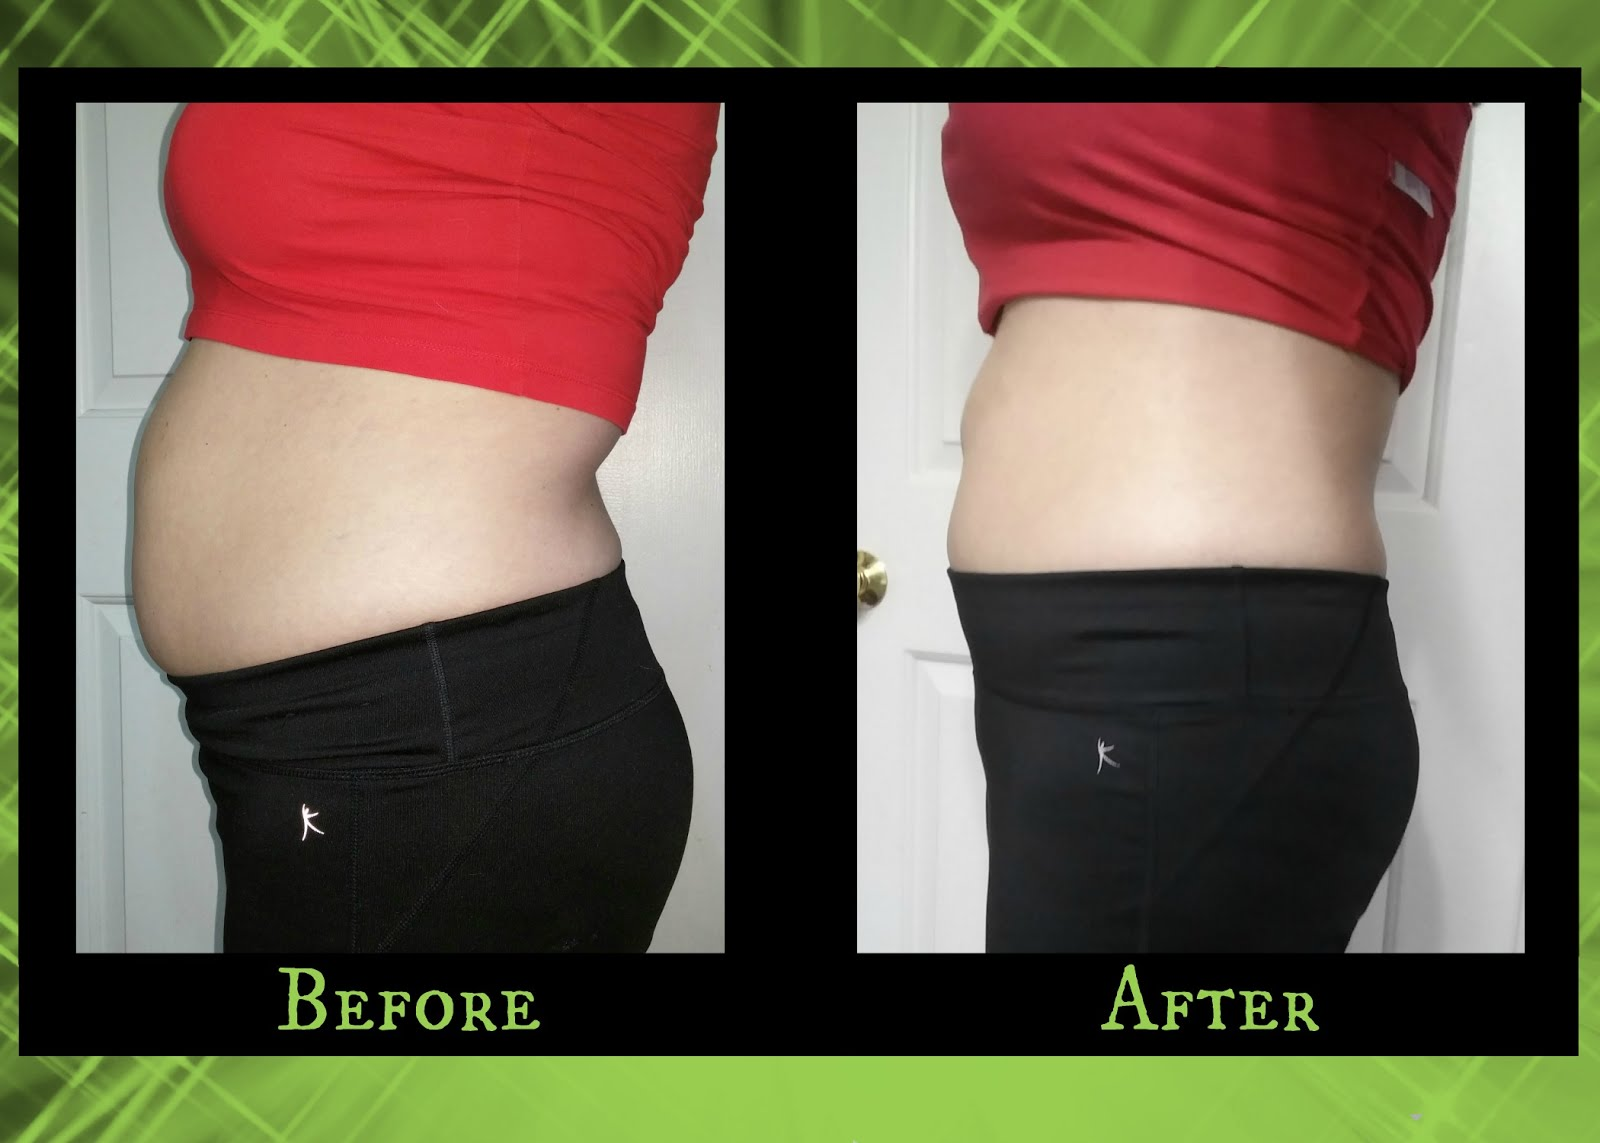 My Wrap Results